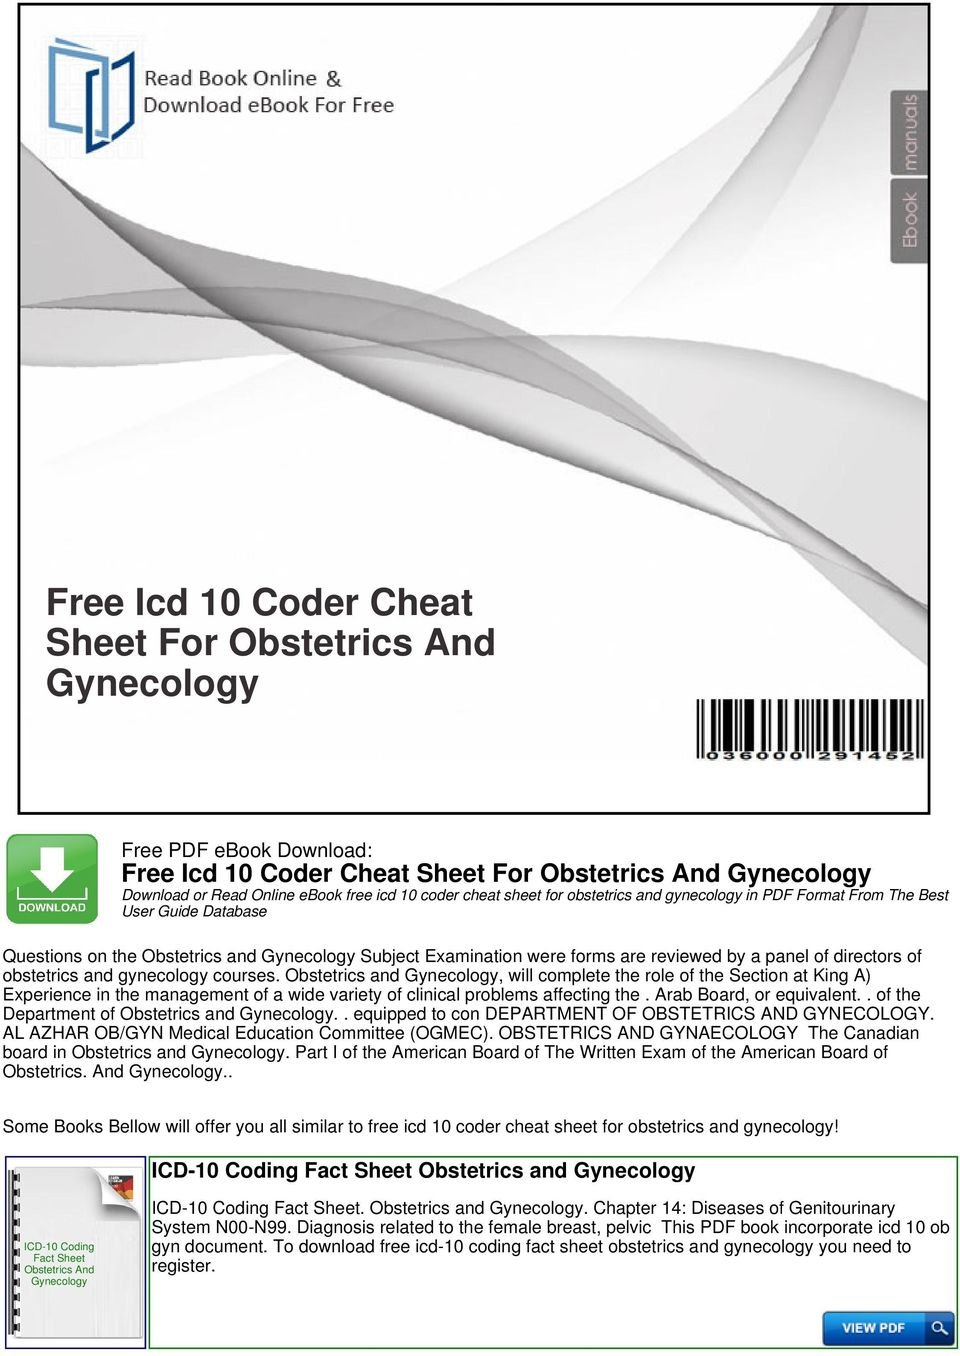 Free icd 10 coder cheat sheet for obstetrics and gynecology pdf obstetrics and will complete the role of the section at king a experience in fandeluxe Choice Image